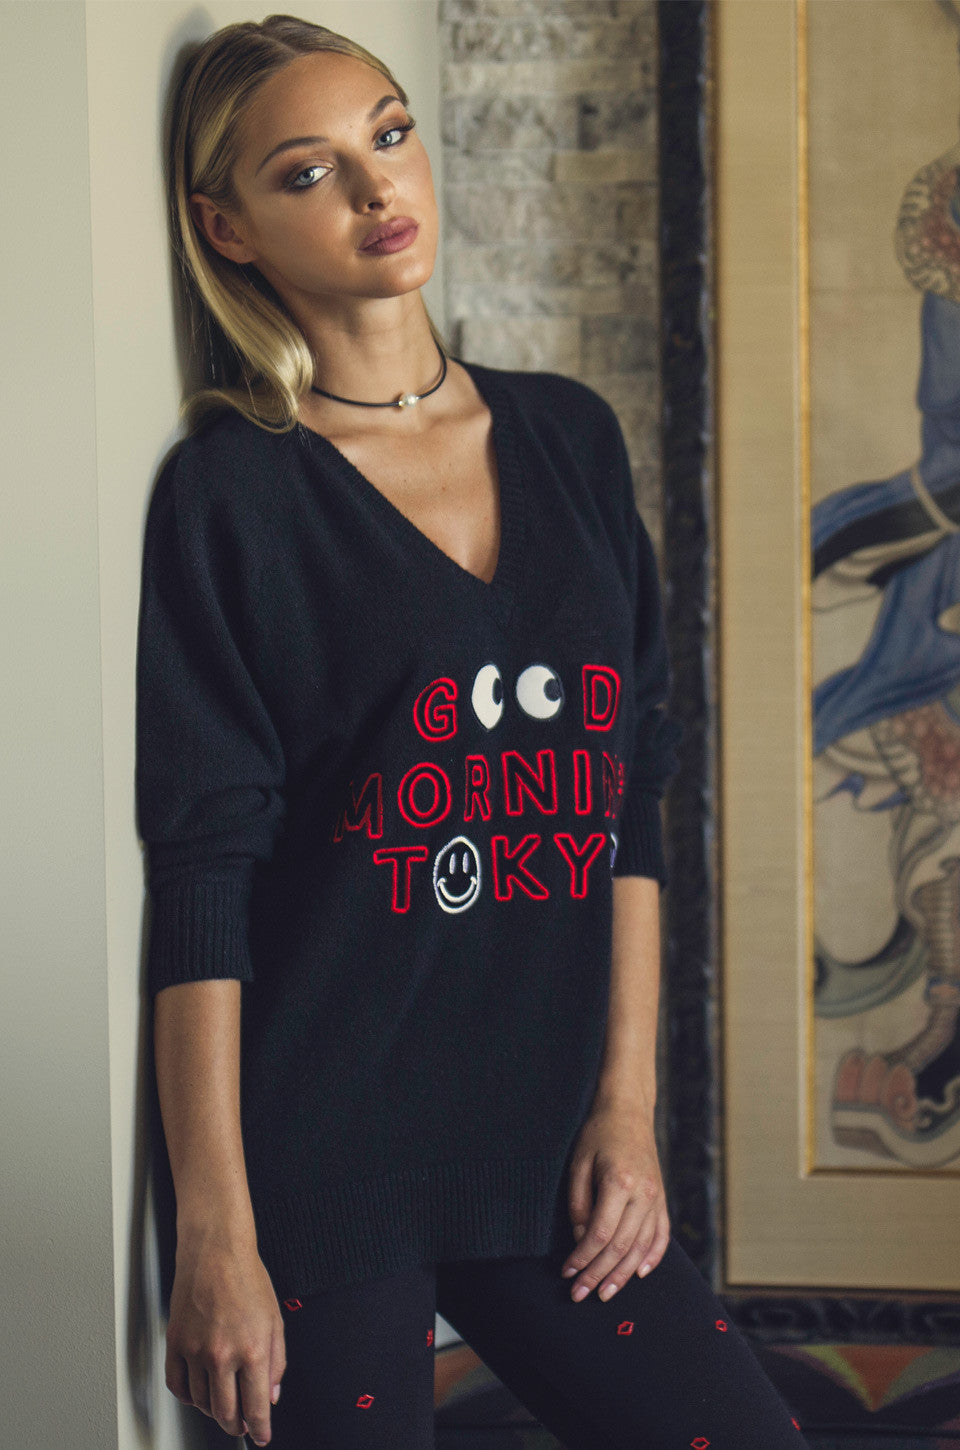 Macall Good Morning Tokyo Oversized V-Neck Cashmere Sweater - Lauren Moshi - 1